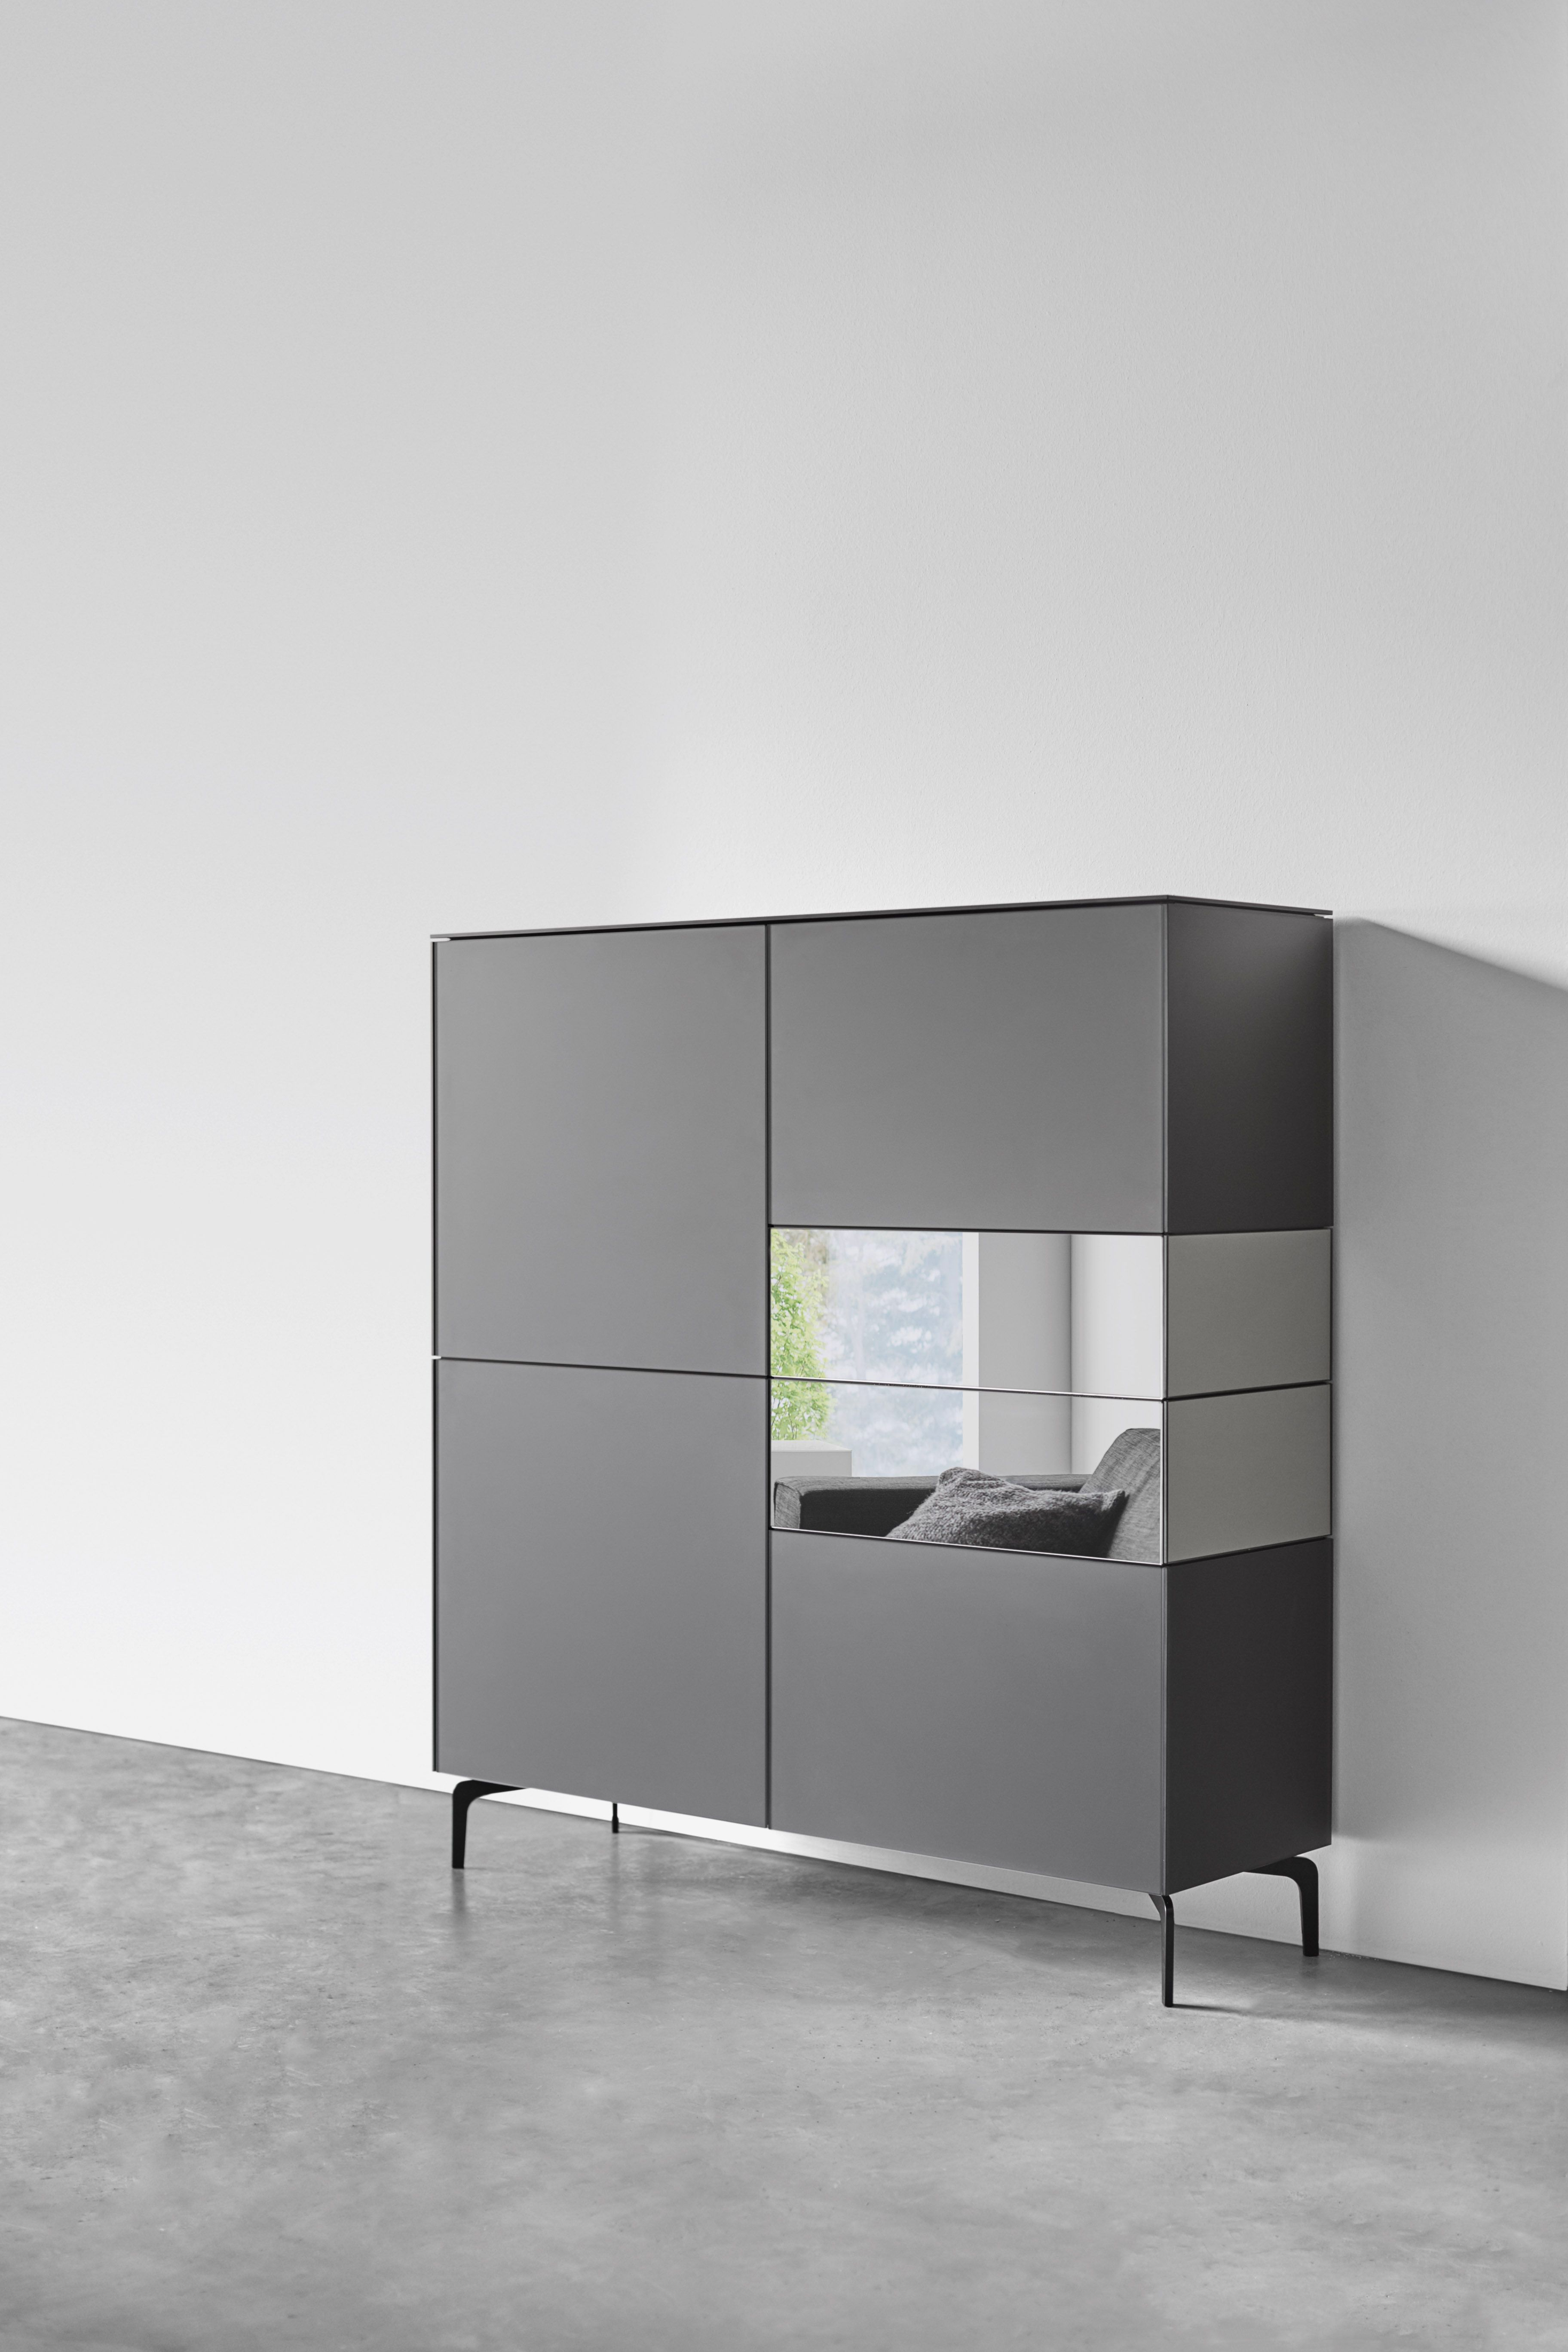 Pin By Duygu A On Cabinets Konsol Bufe Furniture Furniture